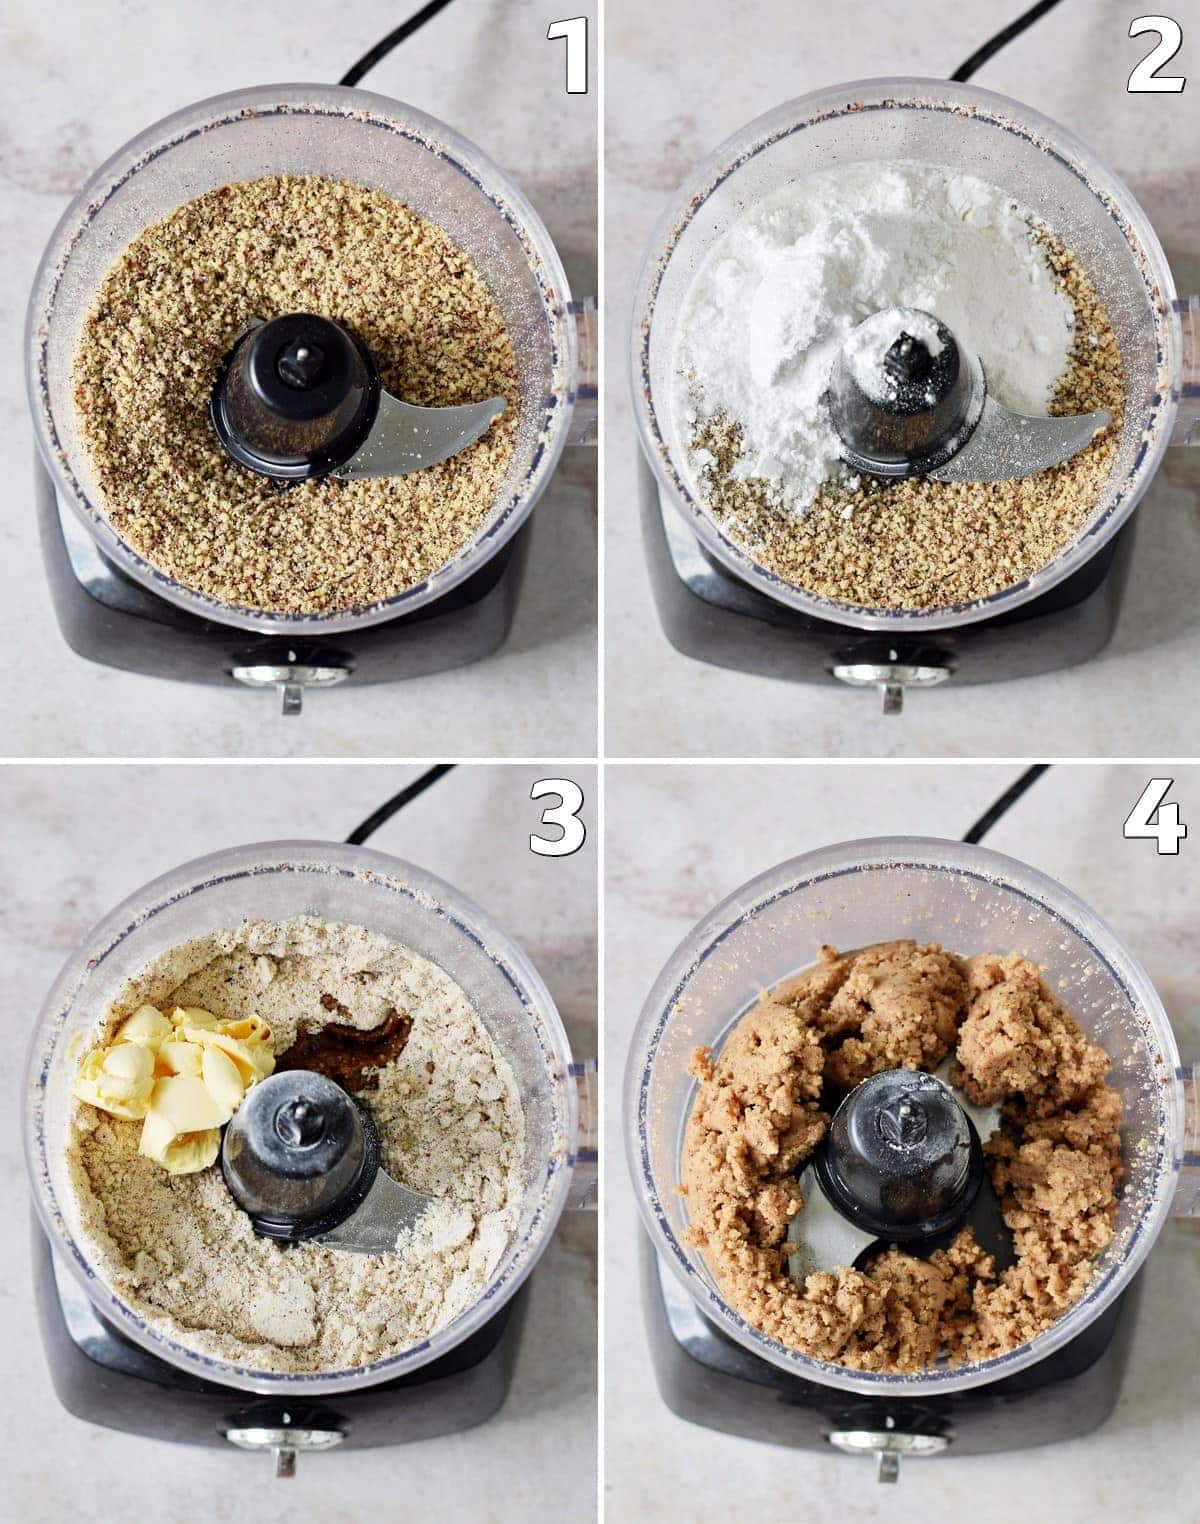 4 step-by-step photos how to make cookie dough with hazelnuts